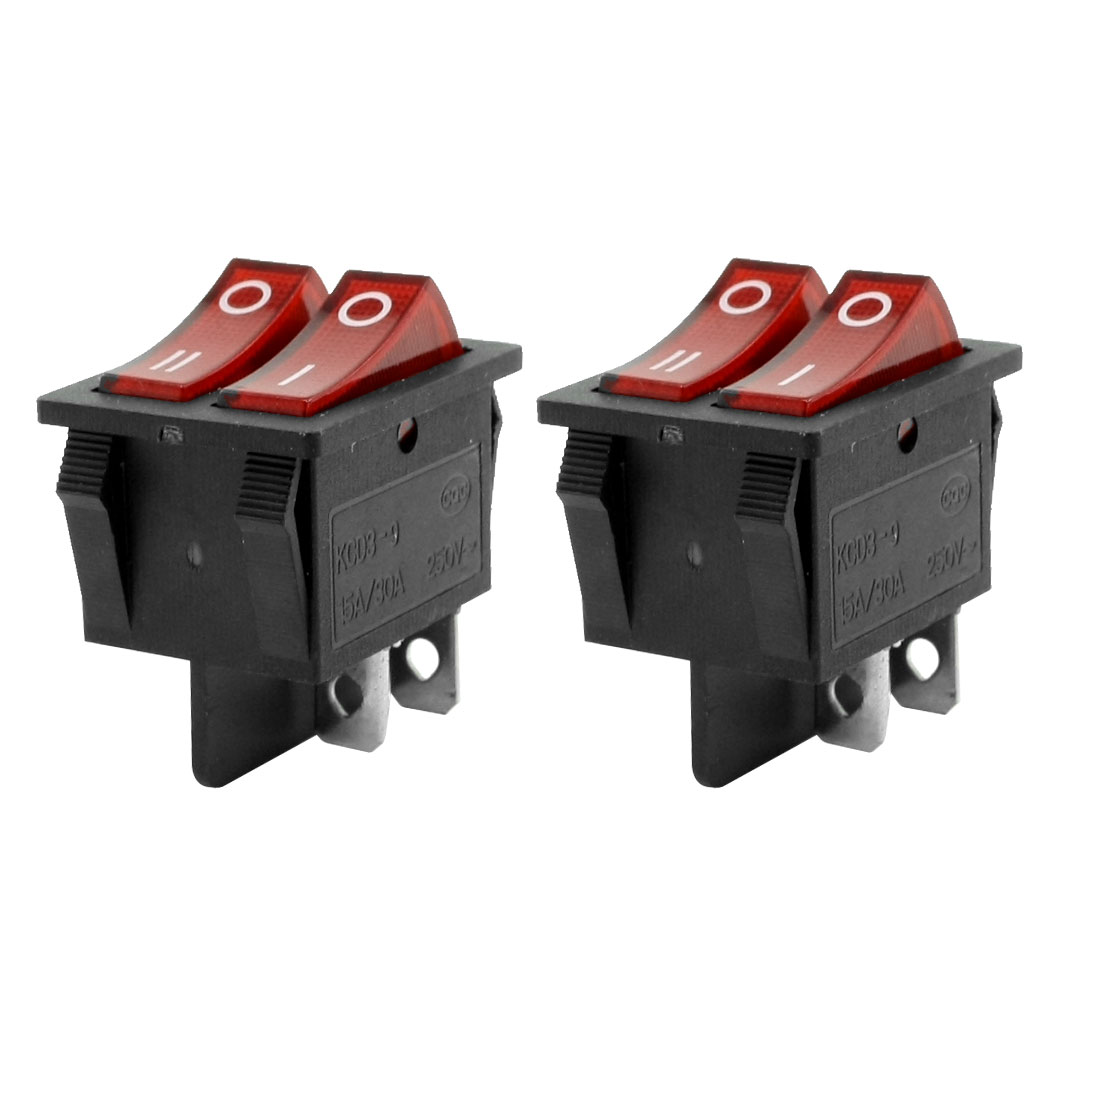 Pair Red Button Dual SPST On-Off Snap in Mount Rocker Switch 15A/30A 250VAC